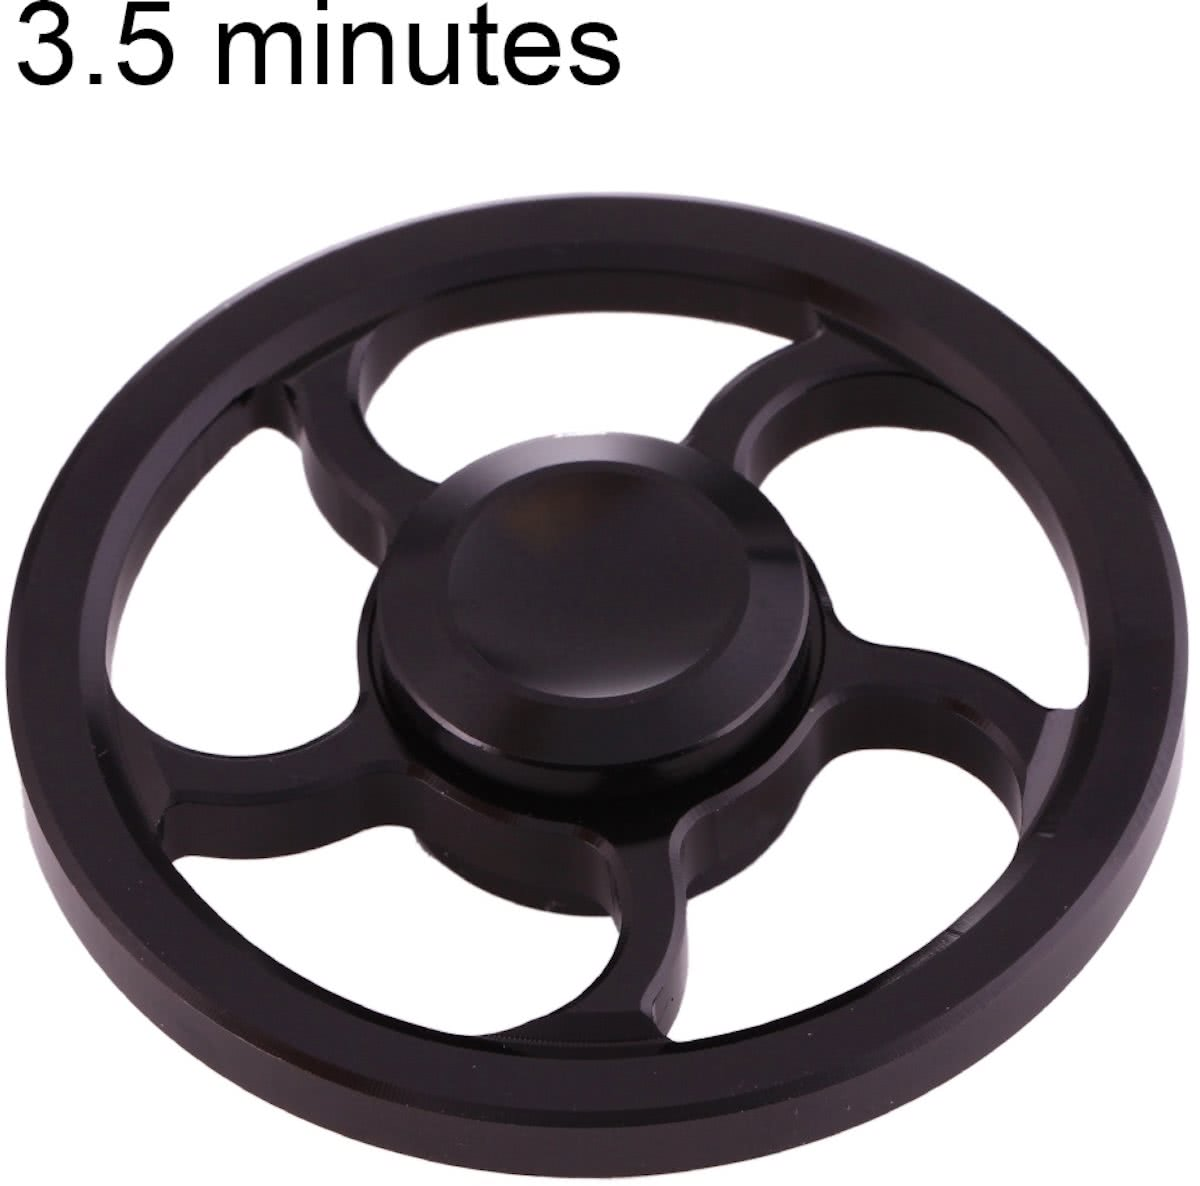 Spinner Toy Stress rooducer Anti-Anxiety Toy voor Children en Adults, 3.5 Minutes Rotation Time, Small Steel Beads Bearing + Aluminum Alloy materiaal, Wind Wheel(zwart)